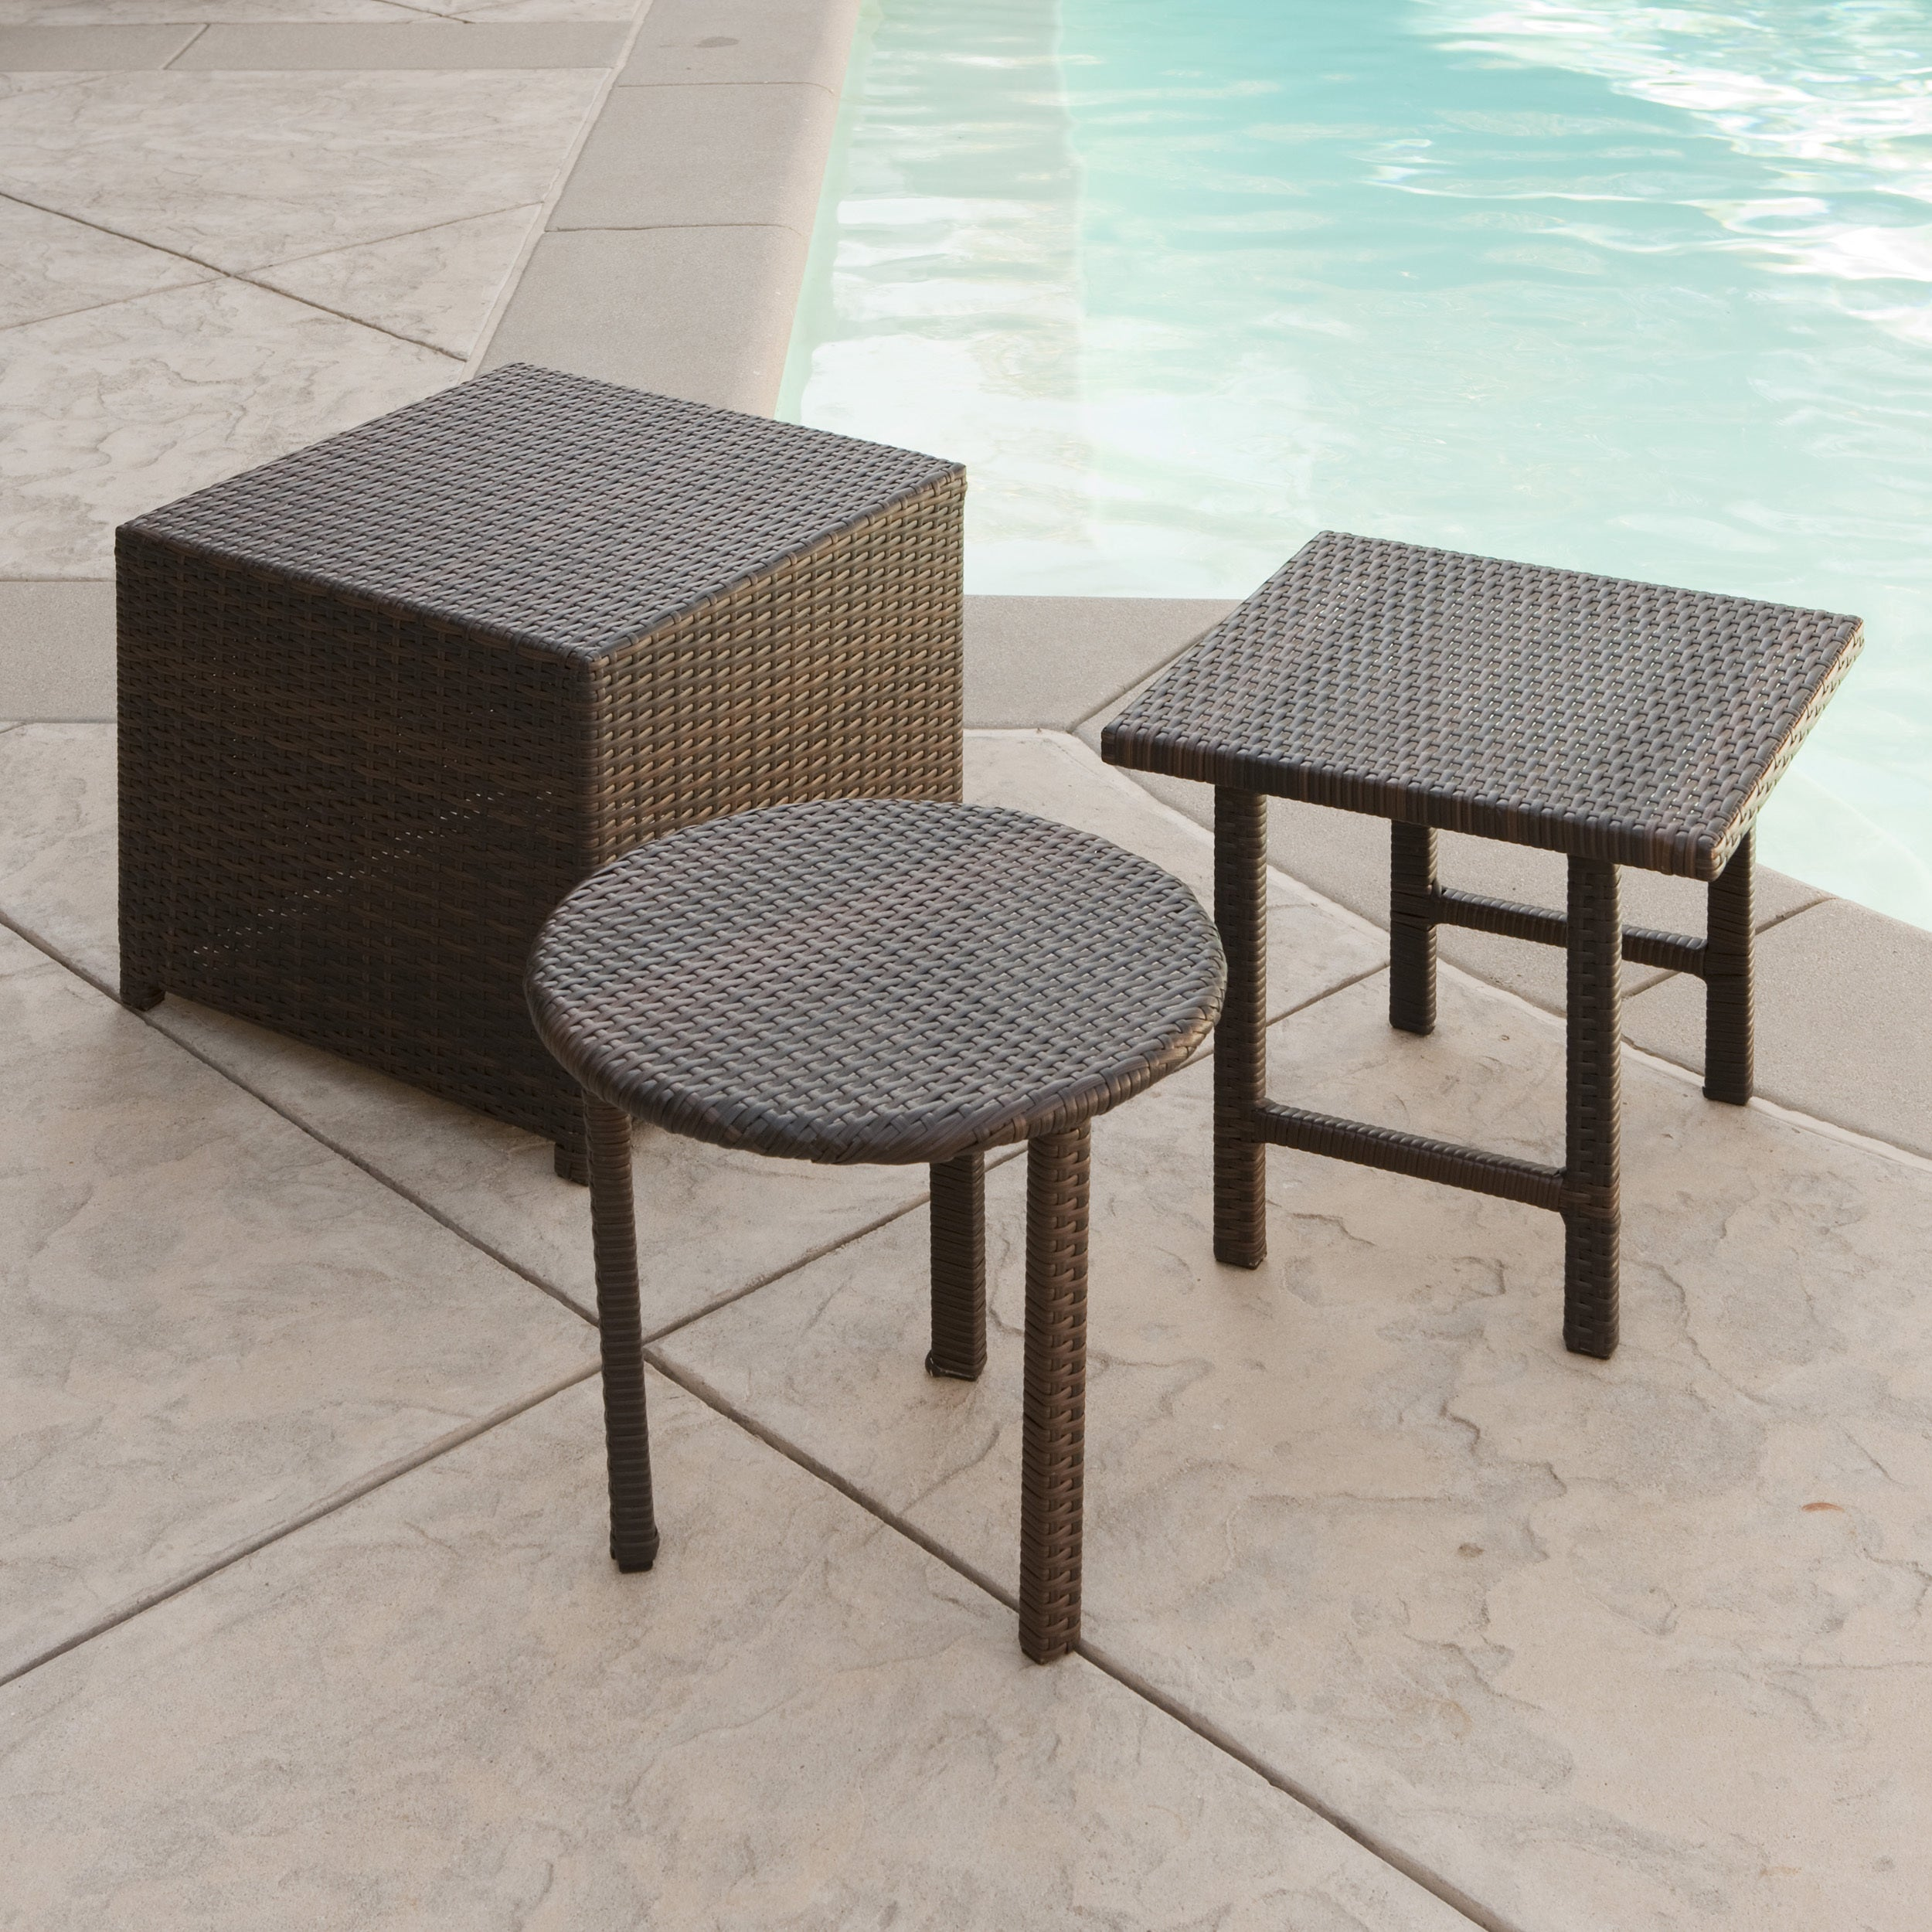 Wicker Table Set Patio Furniture Outdoor Coffee Rattan Garden